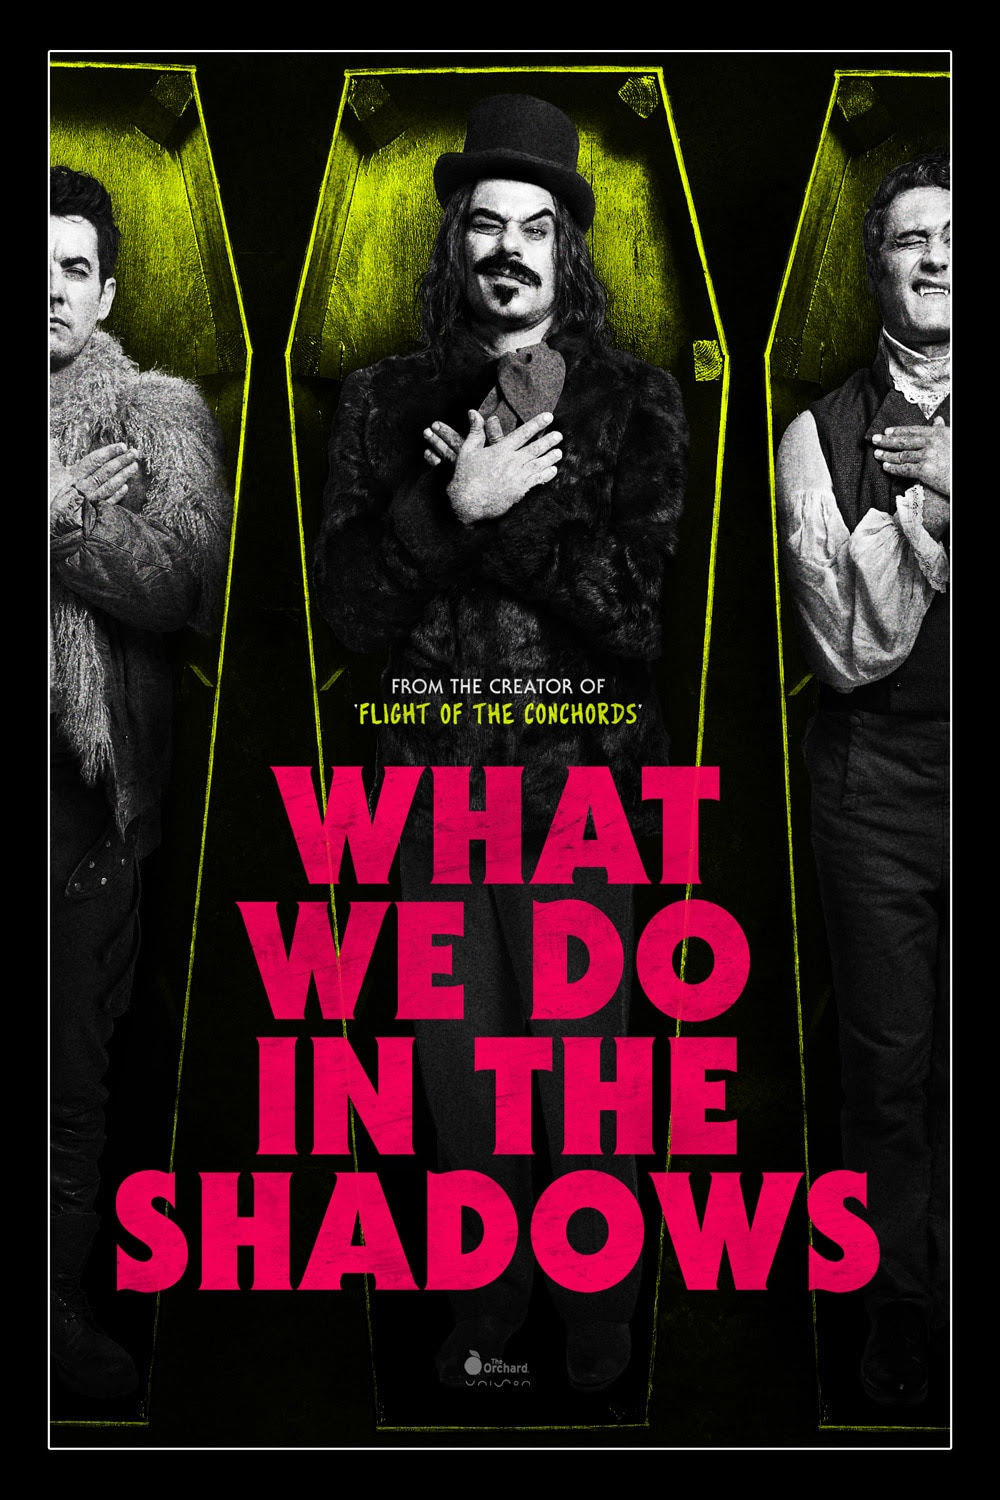 Resultado de imagem para What We Do in the Shadows 2014 posters